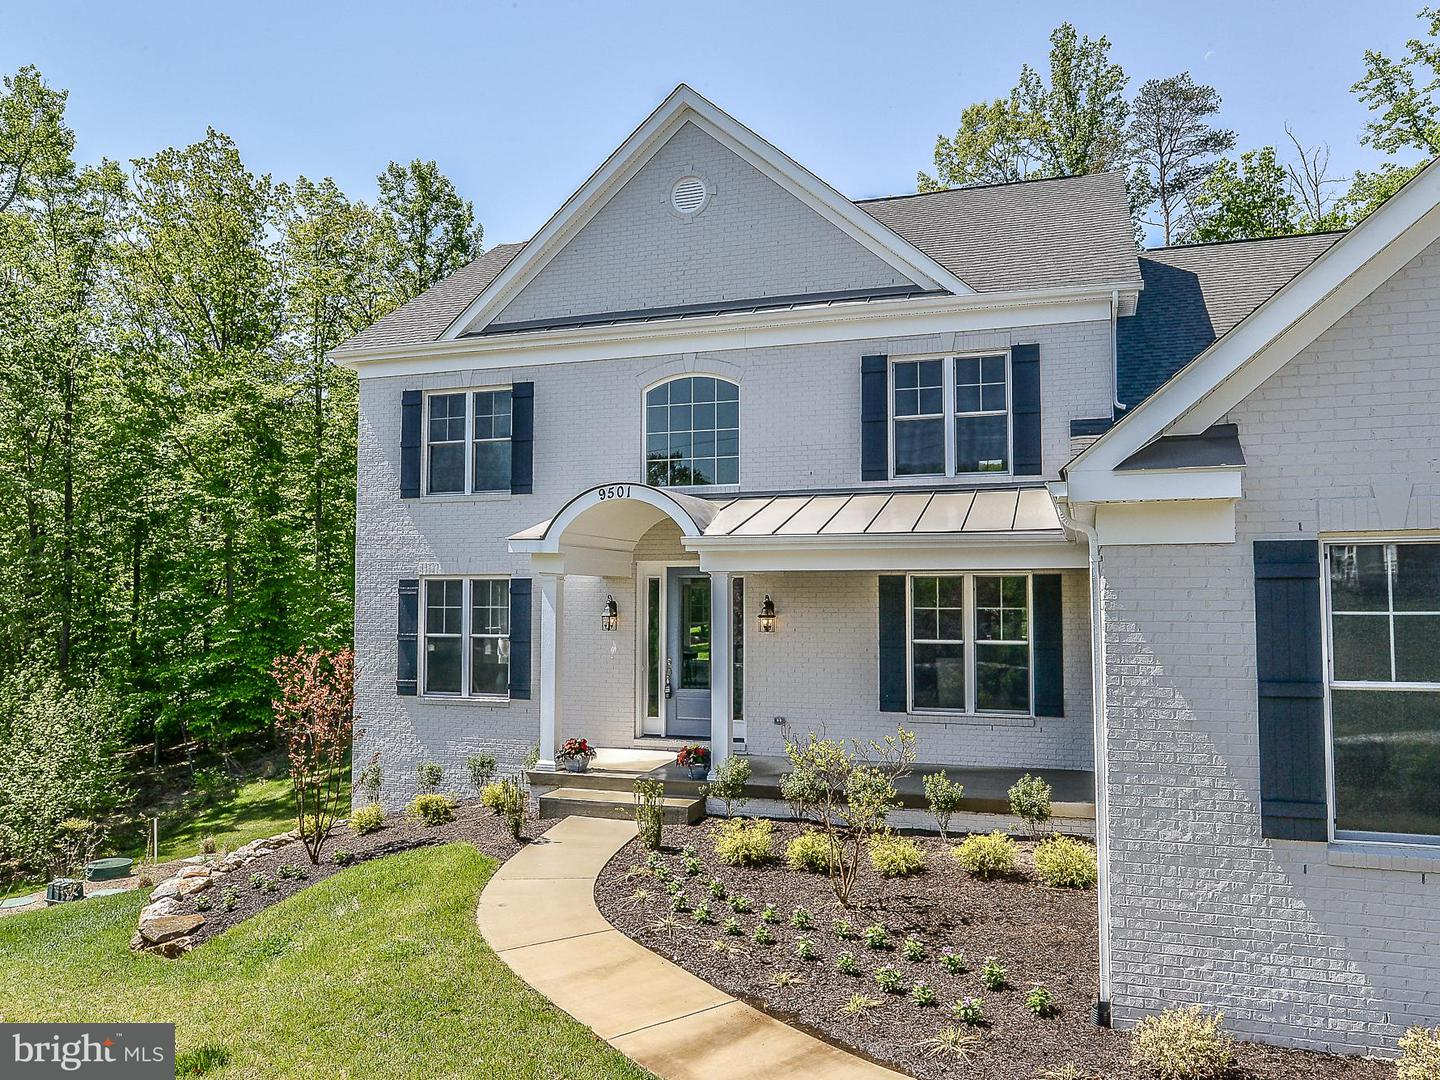 Single Family for Sale at 9501 Peniwill Dr Lorton, Virginia 22079 United States